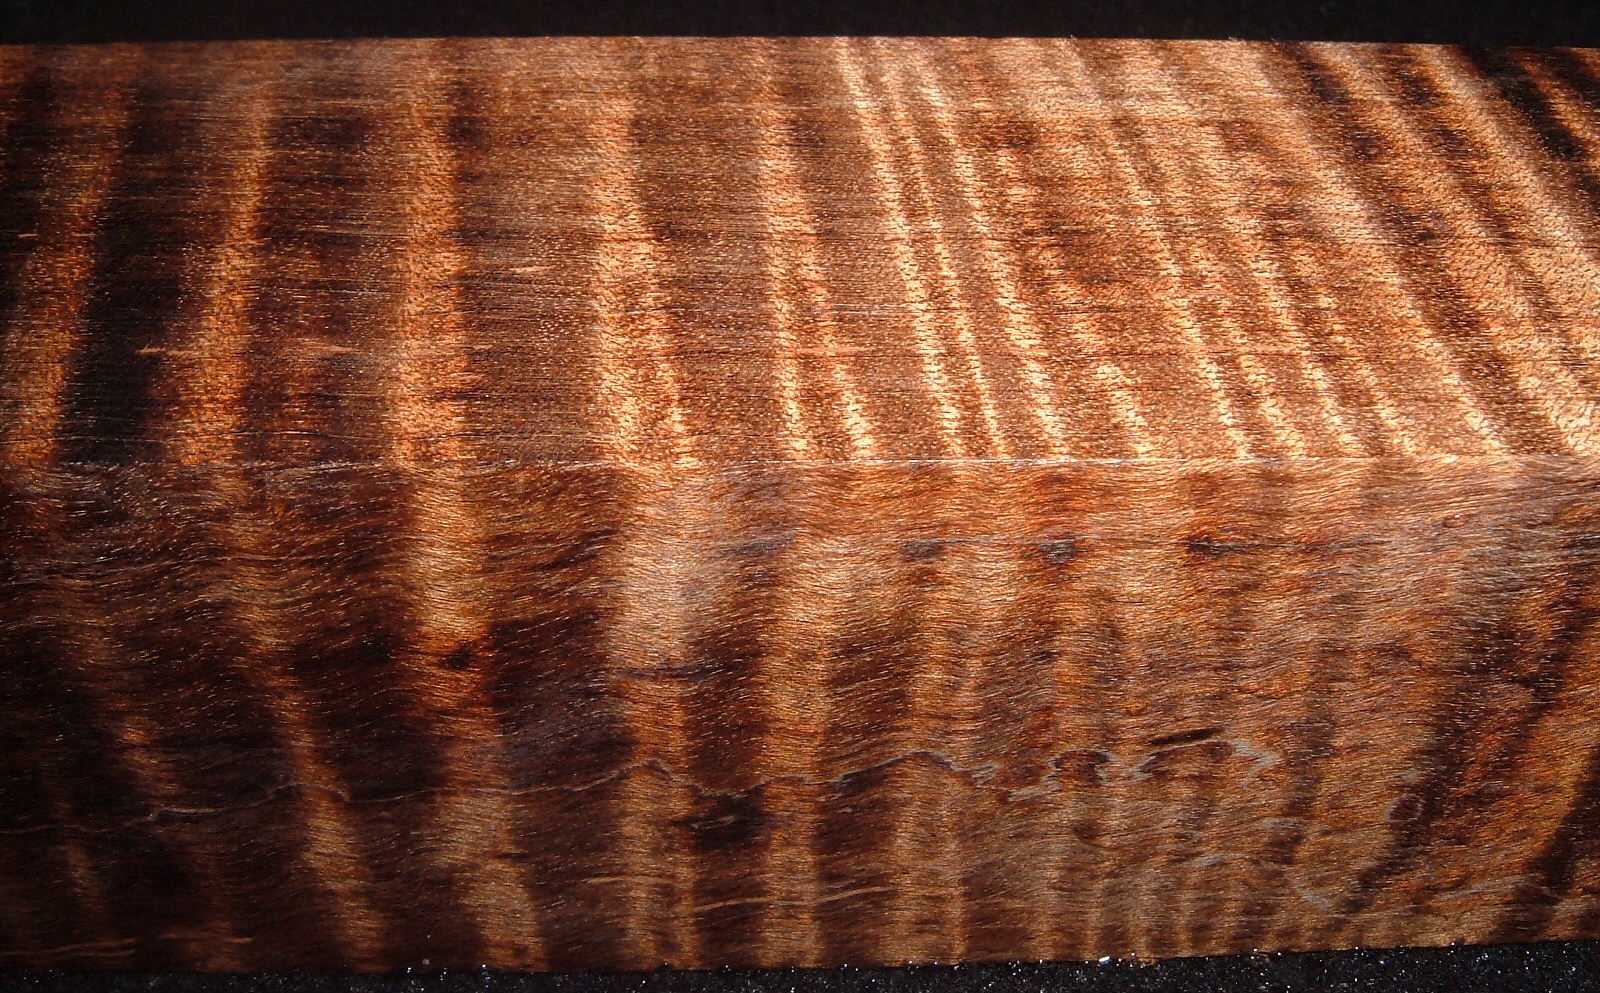 Z522, 1-7/8x1-7/8x7-1/4, Brown, Curly Tiger Maple Dyed Stabilized, wood turning block